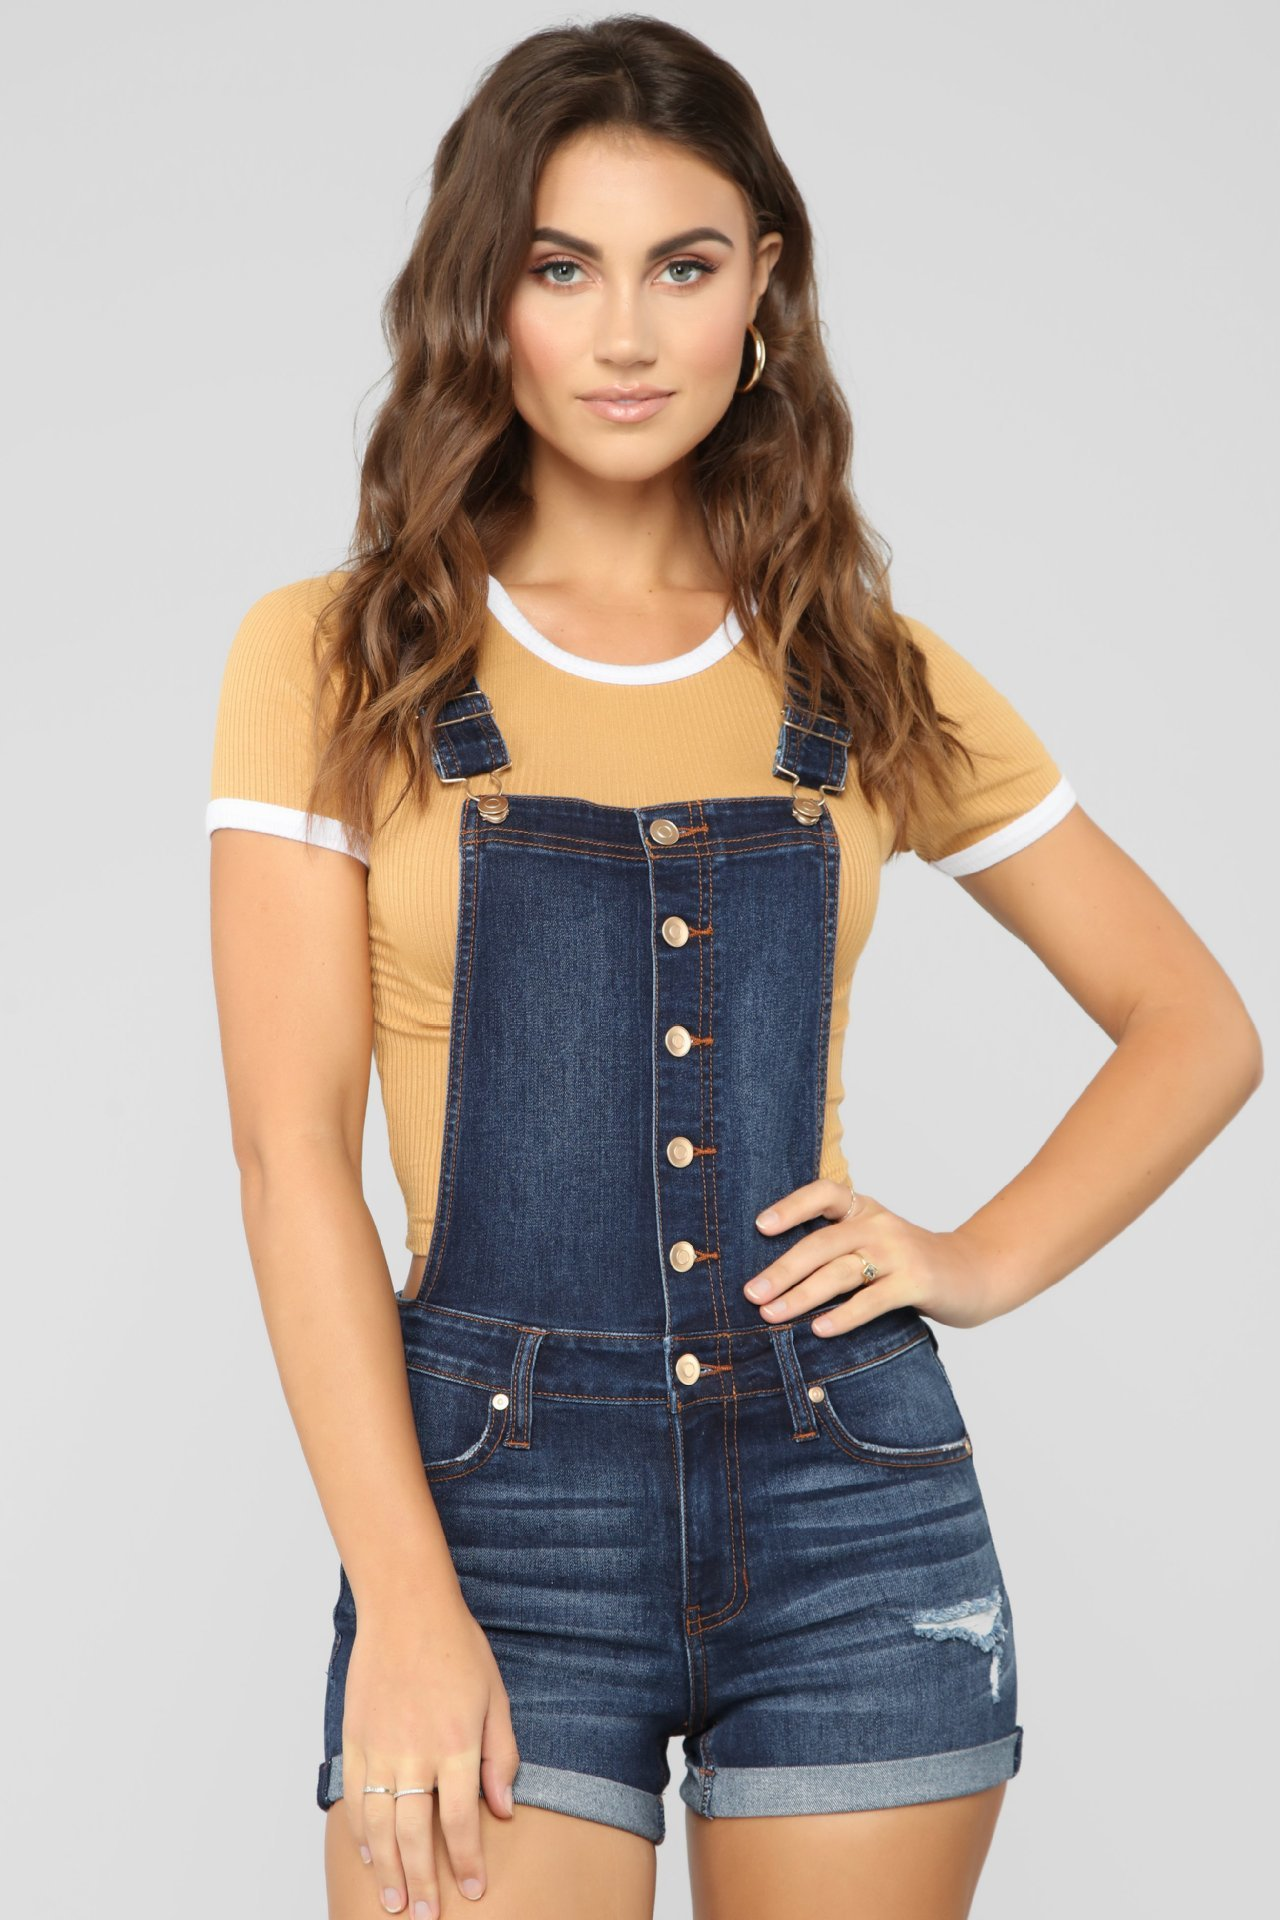 Plus Size Womens Rompers Jumpsuit Denim Short Overalls Skinny Jeans Playsuits Femme Ripped Hole Combi Shorts Combinaison Siamese 2